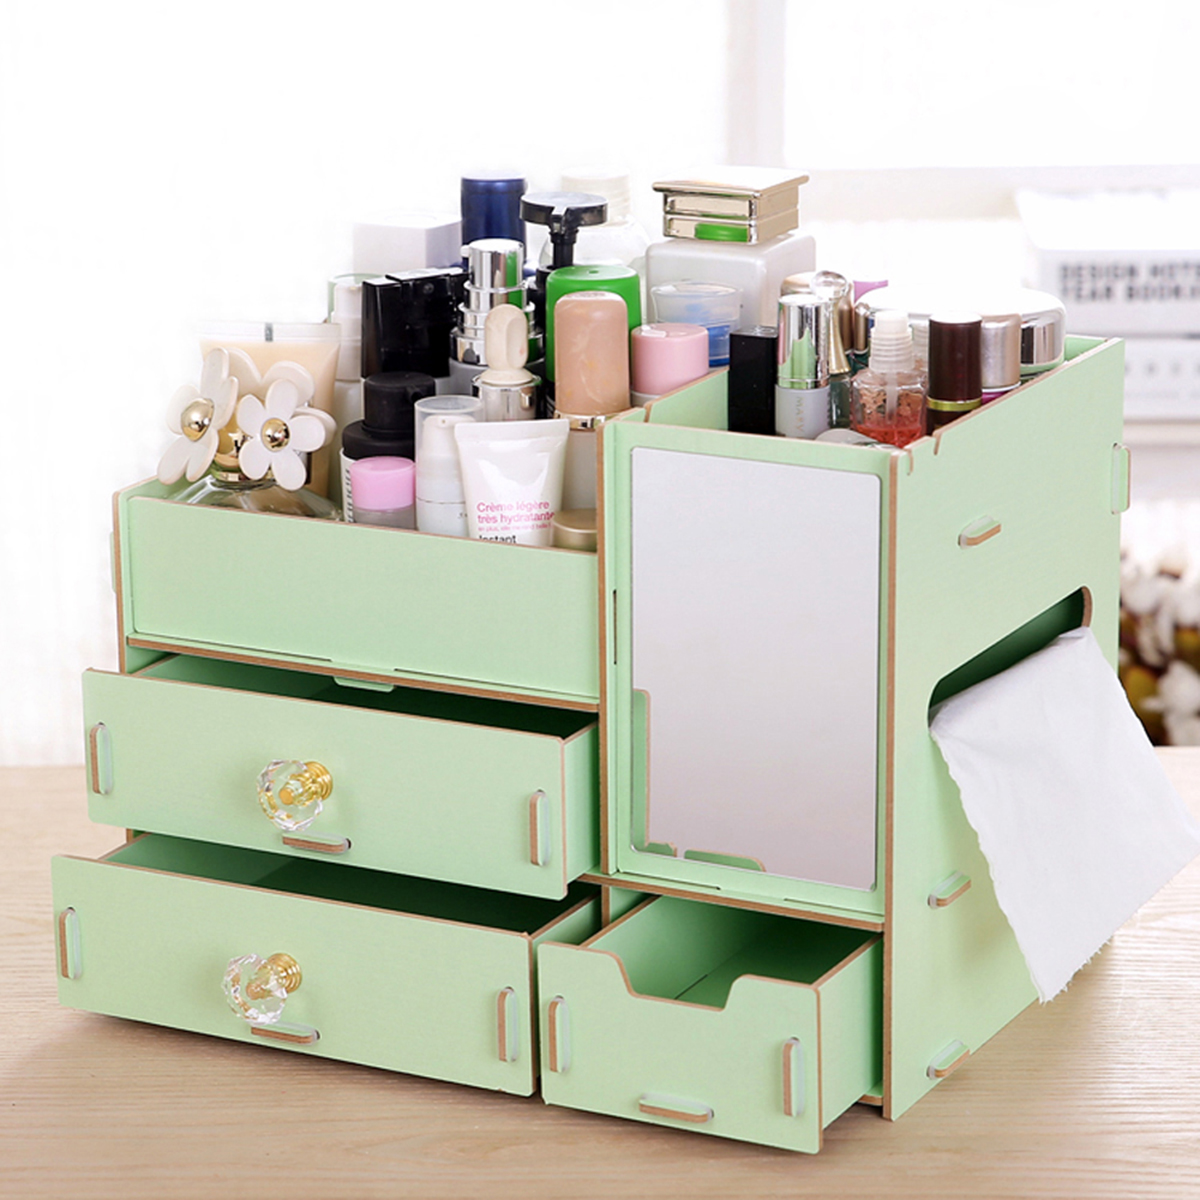 Desktop Cosmetic Storage Box DIY Fixed Wooden Makeup Organizer With 3 Drawers Mirror Jewelry Cabinet Container Dressing Case v cut wooden makeup organizer